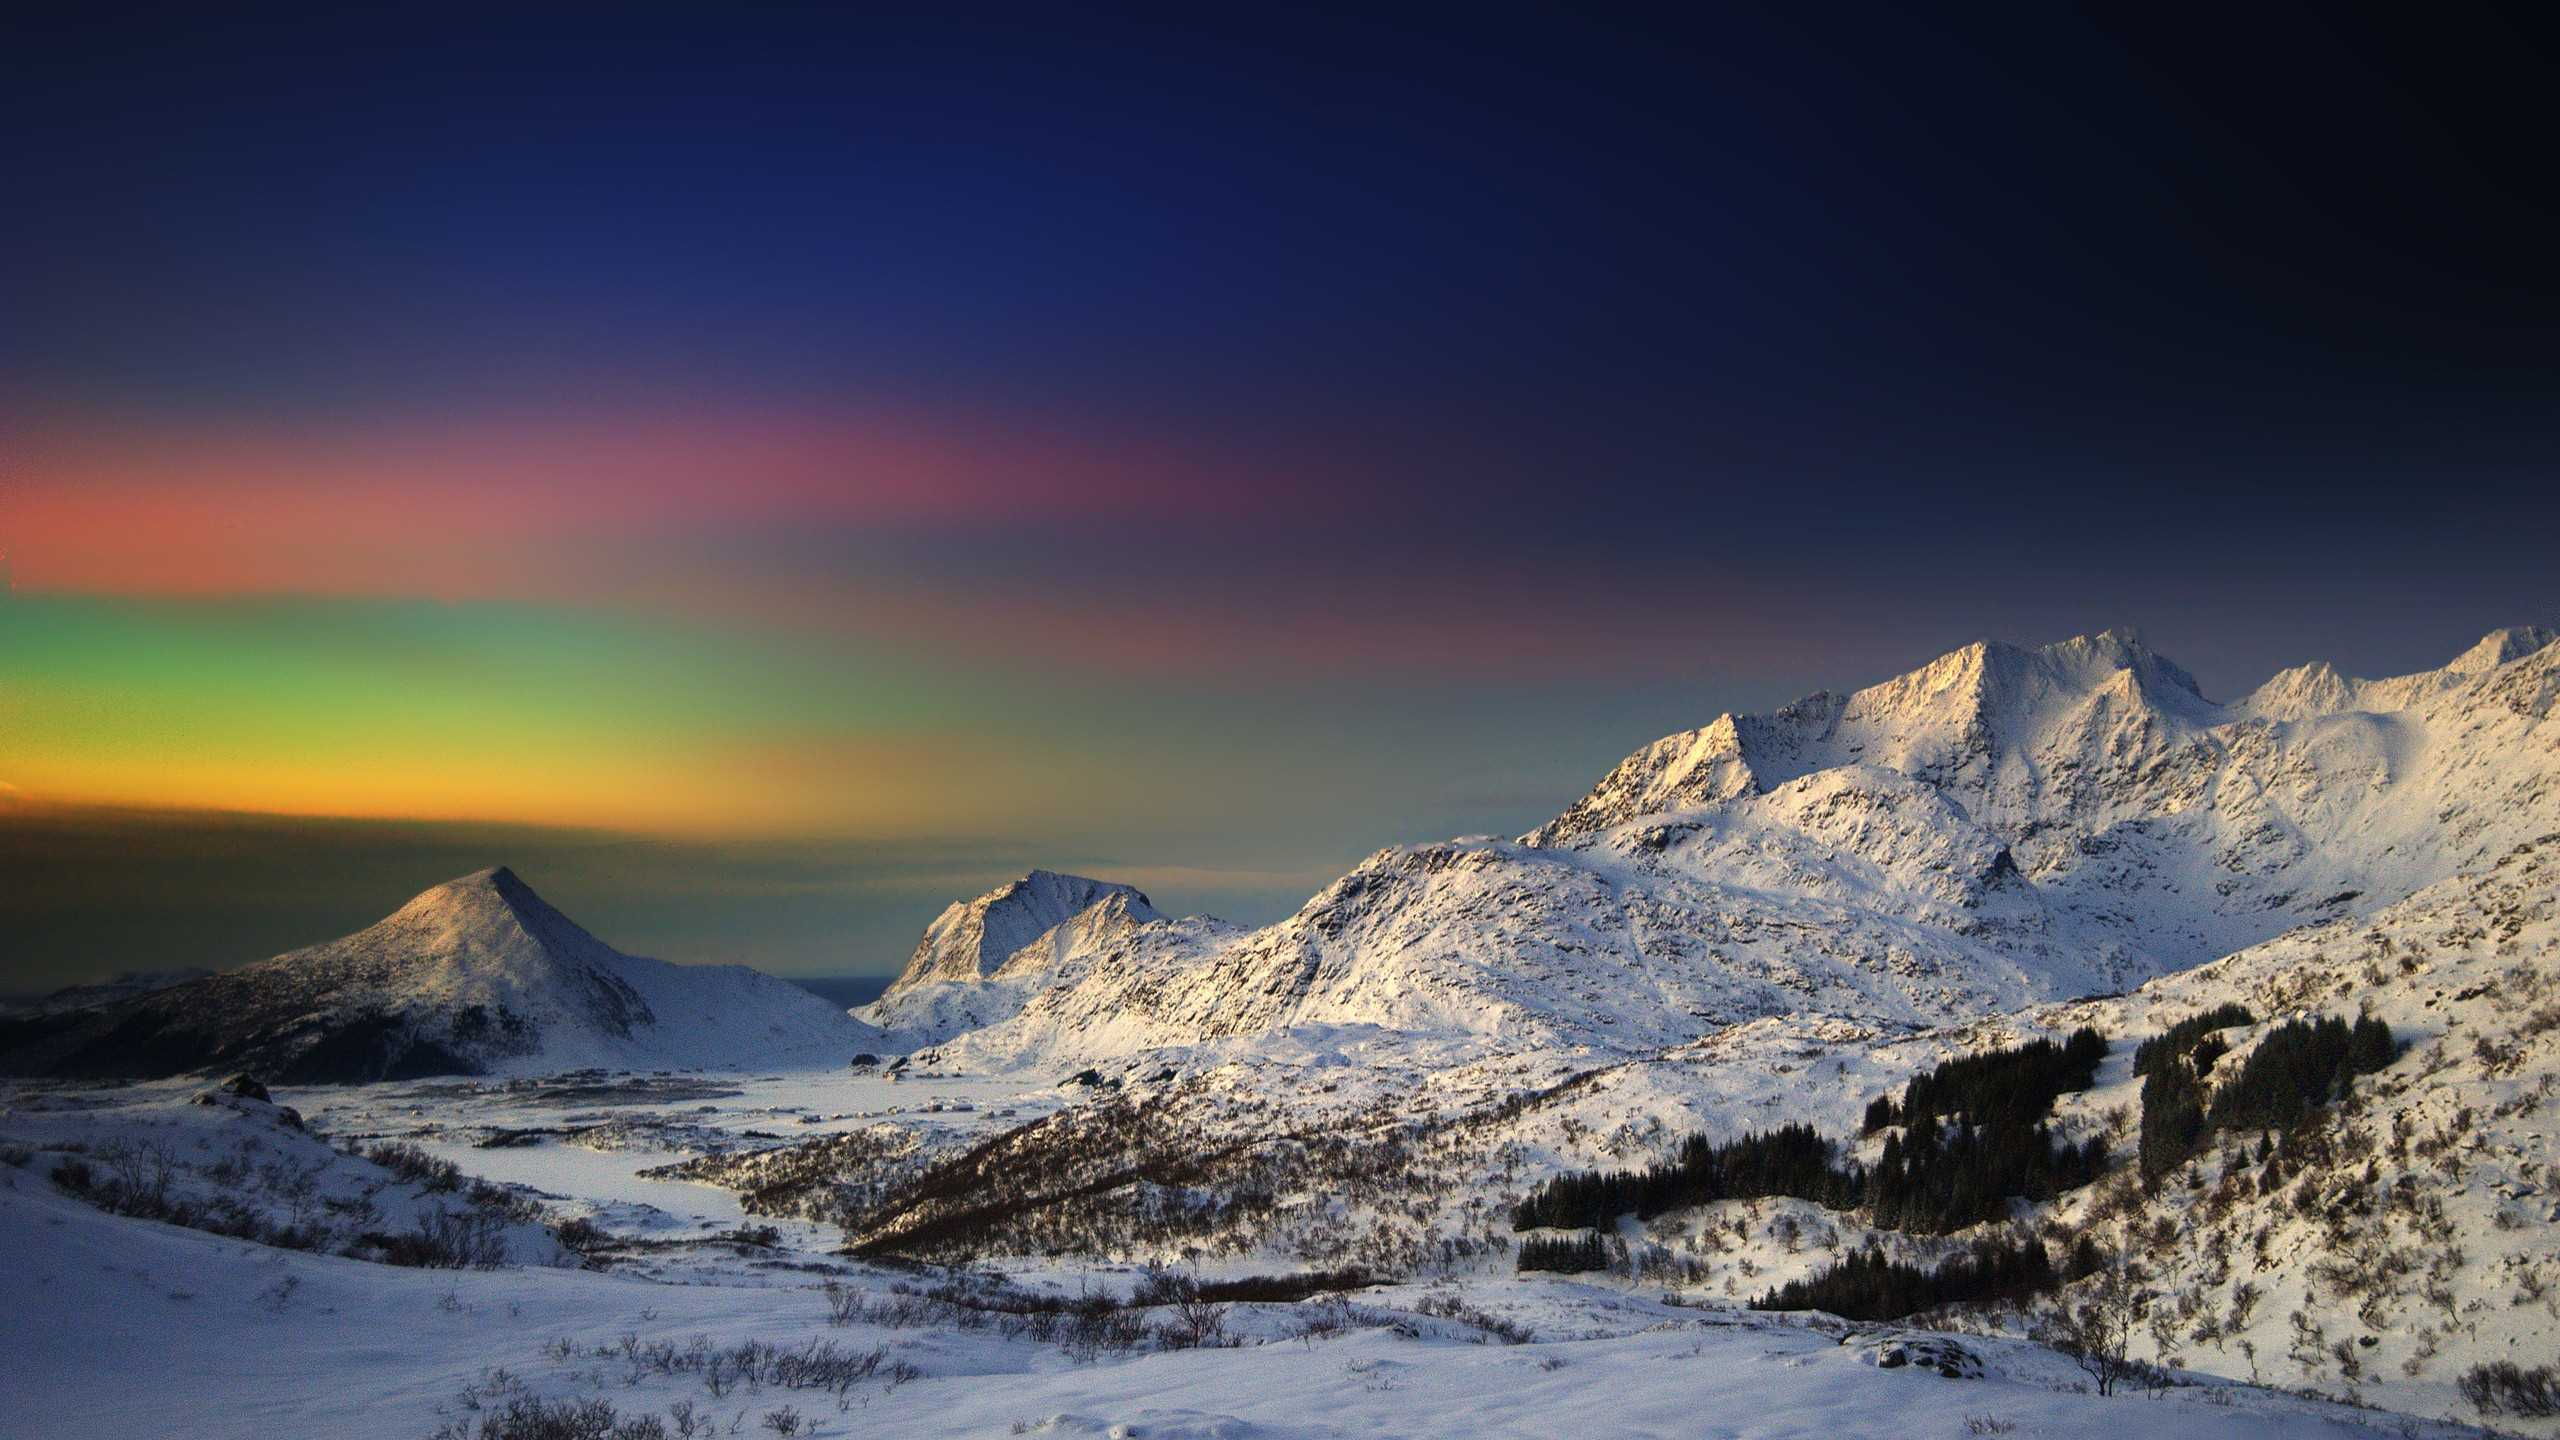 Group Of Snowy Mountains Hd Wallpaper Art